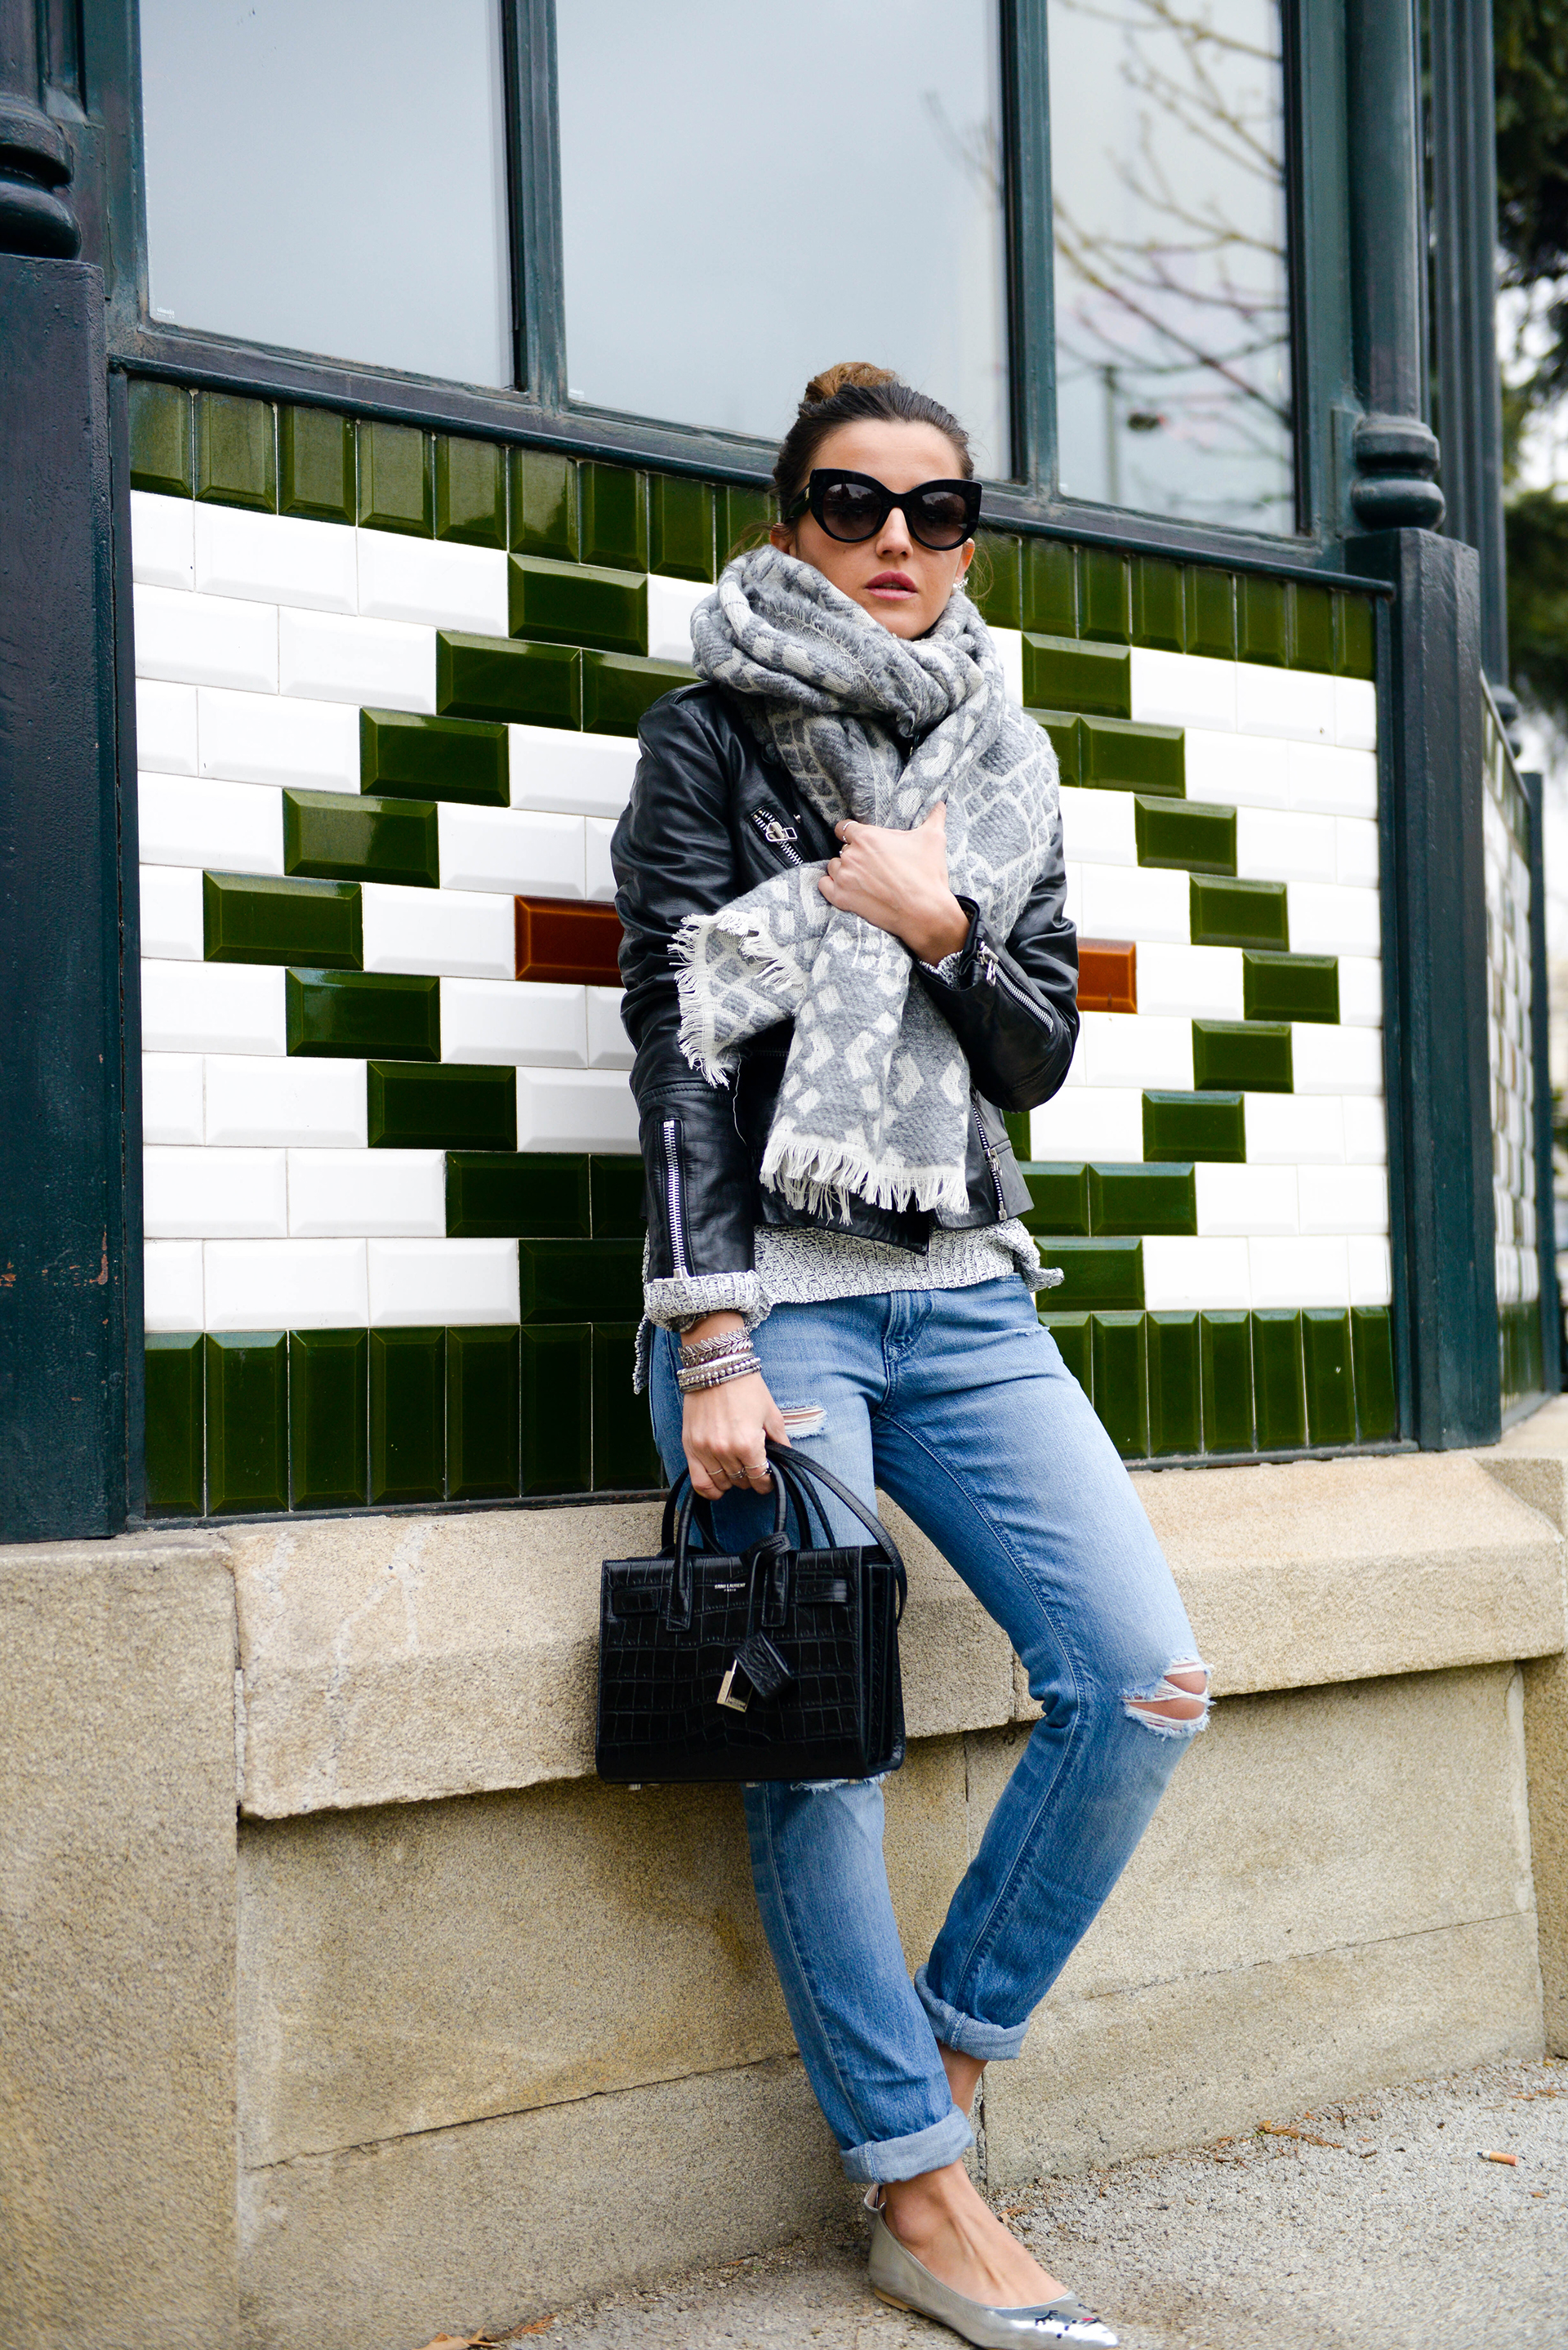 Alexandra Pereira is prepared for whatever cold temperatures this winter season might bring in this adorable oversized grey knitted scarf, worn with a sheepskin trimmed leather jacket and ankle rolled jeans. Sweater: Buylevard, Jeans: Zara, Shoes: Asos, Jacket: Mango, Bag: Yves Saint Laurent.